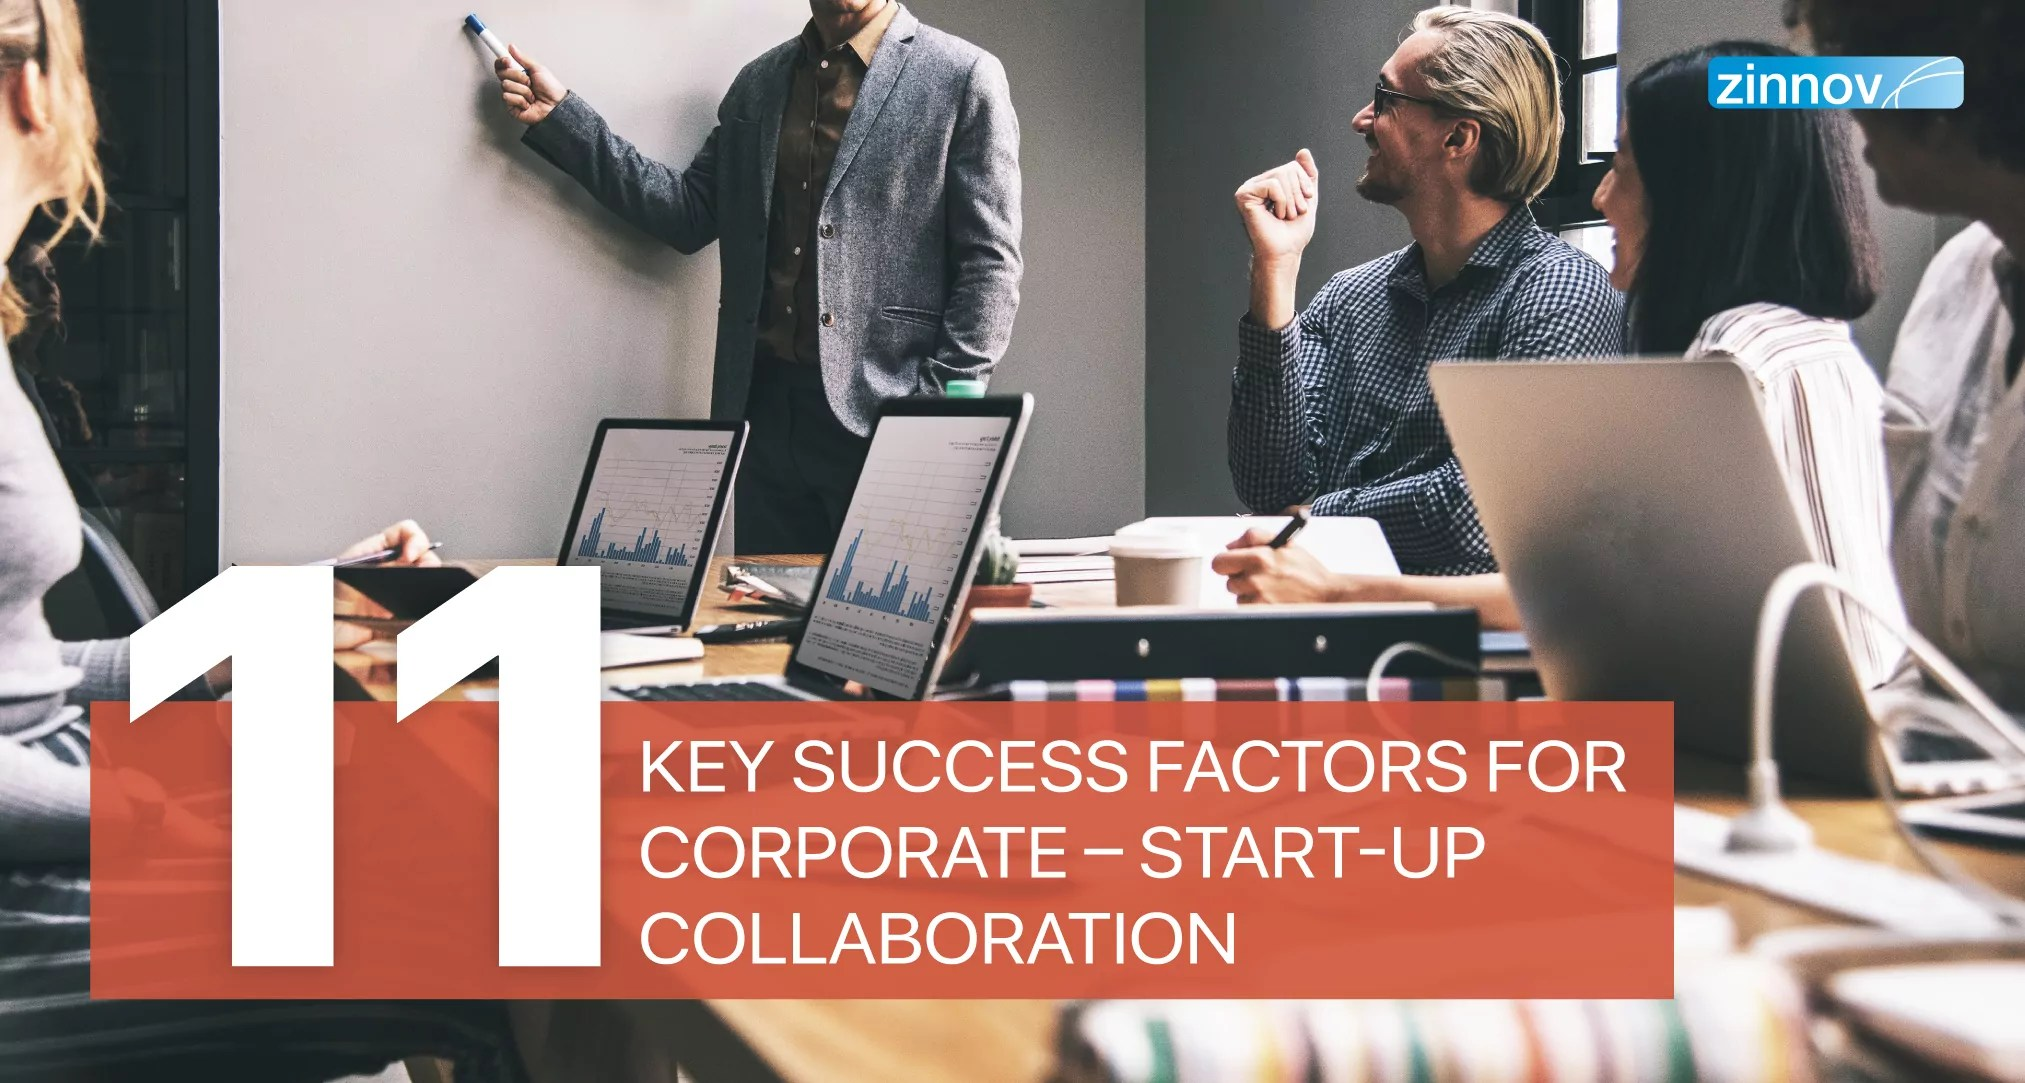 11 Key Success Factors For Corporate - Start-up Collaboration Programs